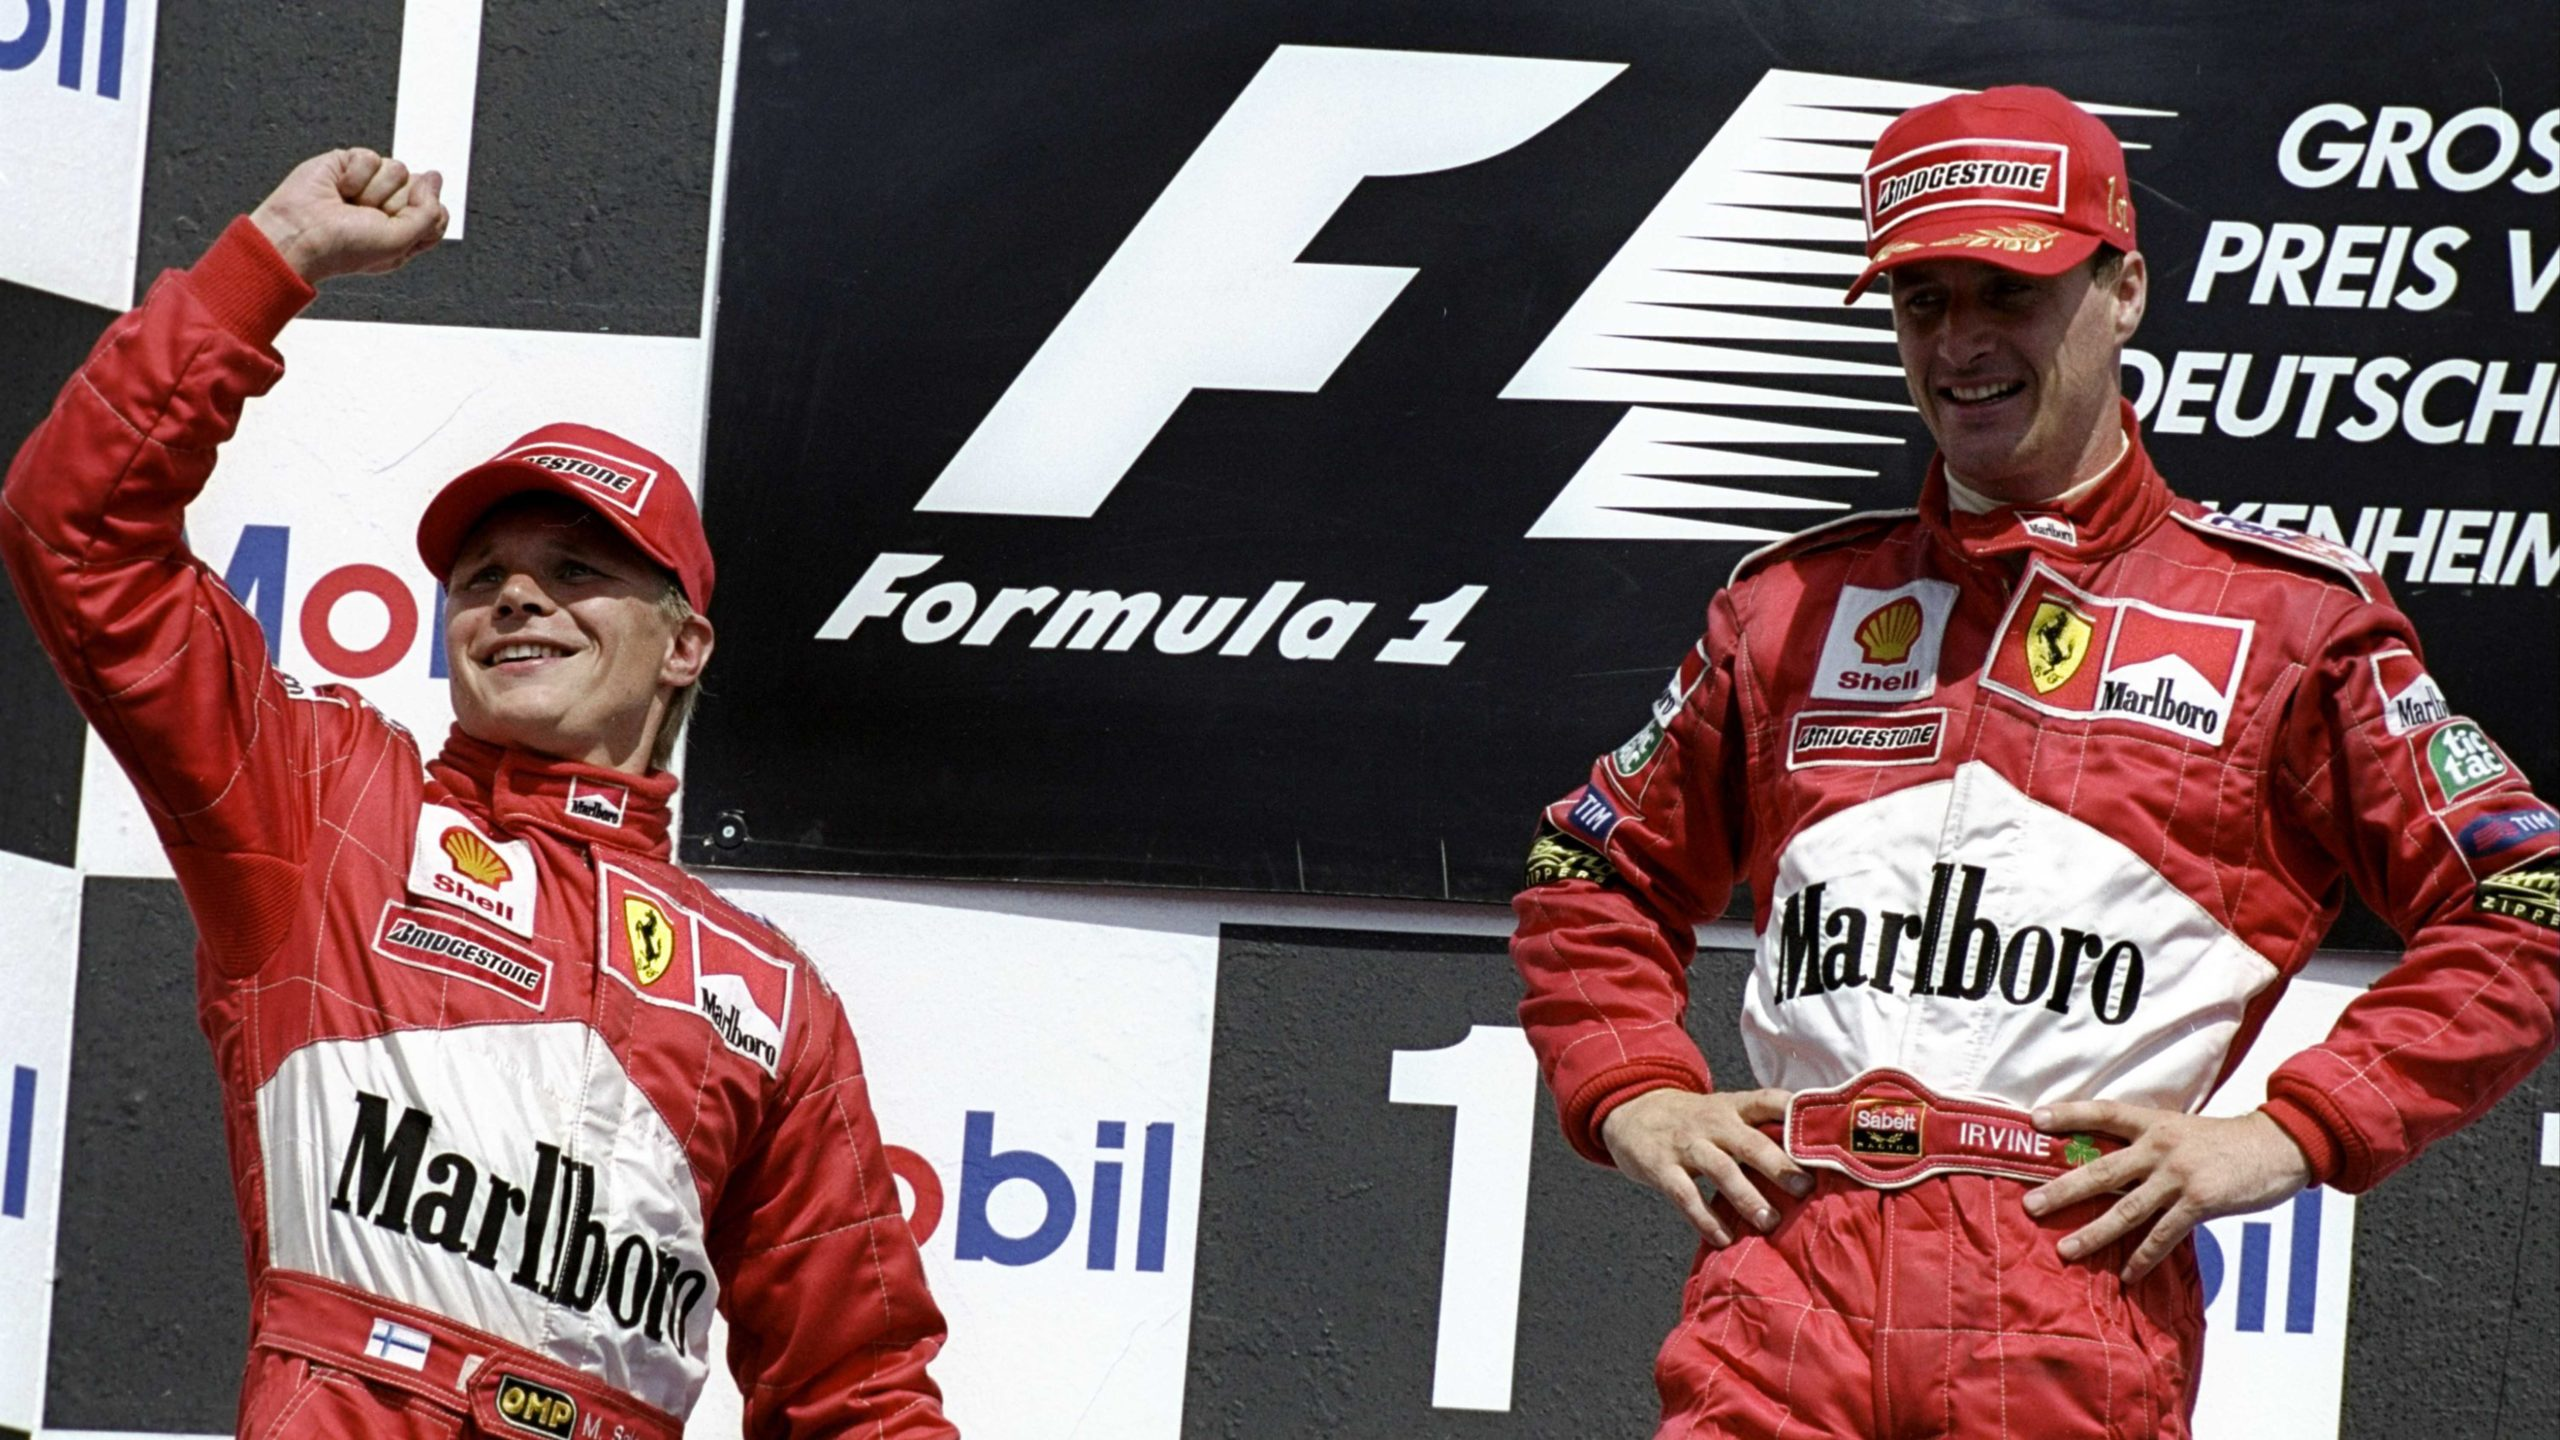 Eddie Irvine and Mika Salo on the podium after finishing 1-2 at Hockenheim in the 1999 F1 German Grand Prix